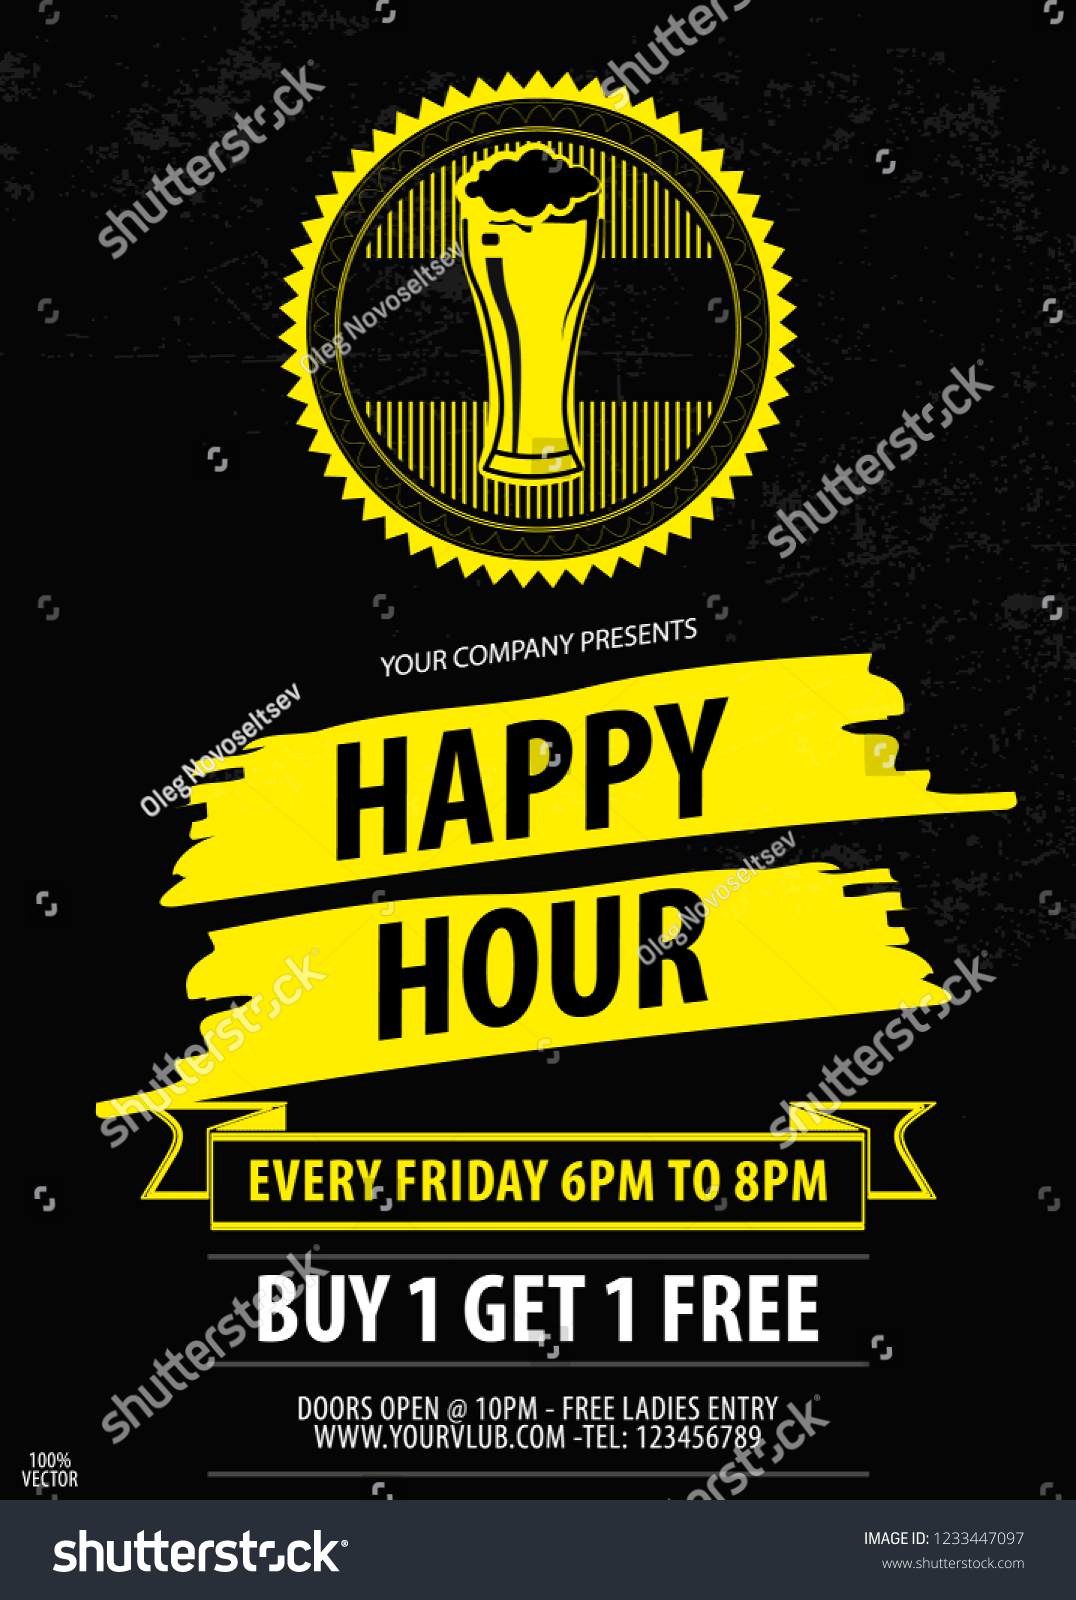 Happy Hour Offer Flyer Template Free Stock Vector Royalty Free